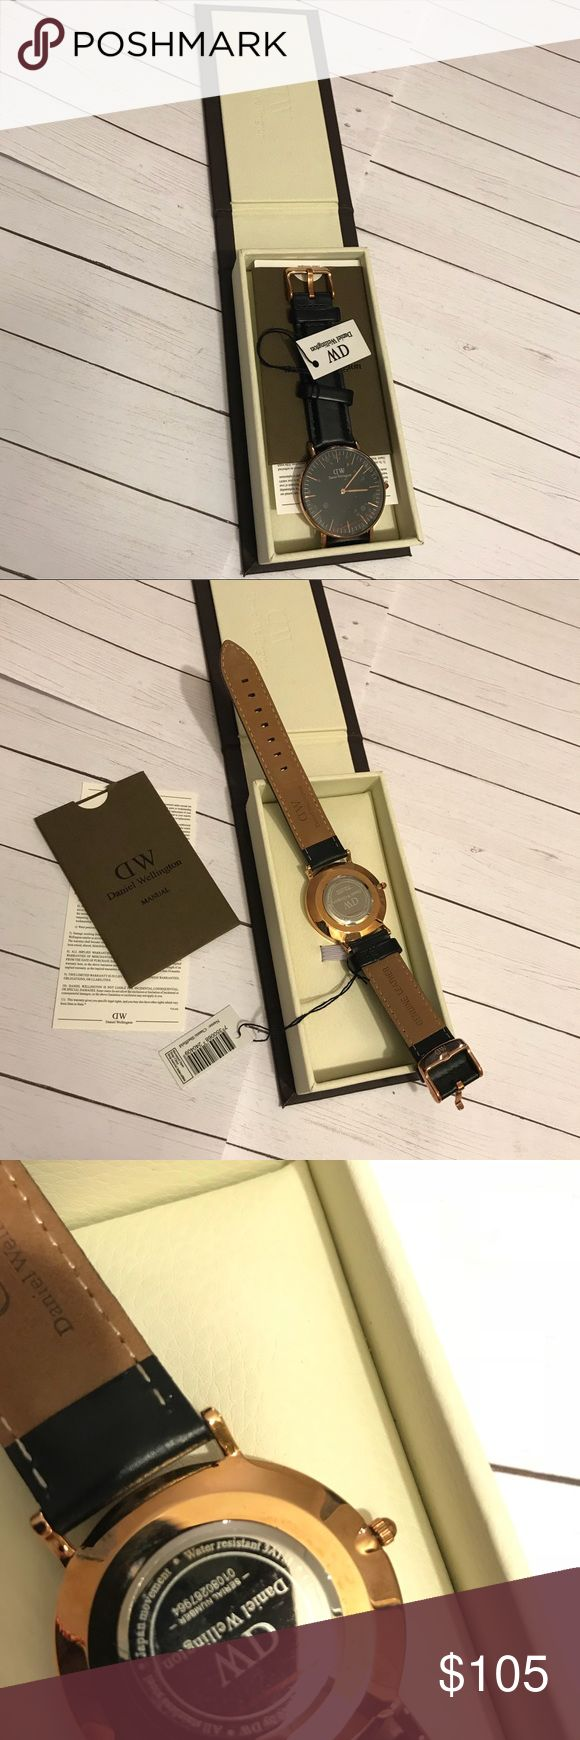 Danielle Wellington Classic Sheffield watch It's size 36mm Brand new Never been used Seal hasn't been removed yet Black and rose gold Daniel Wellington Accessories Watches